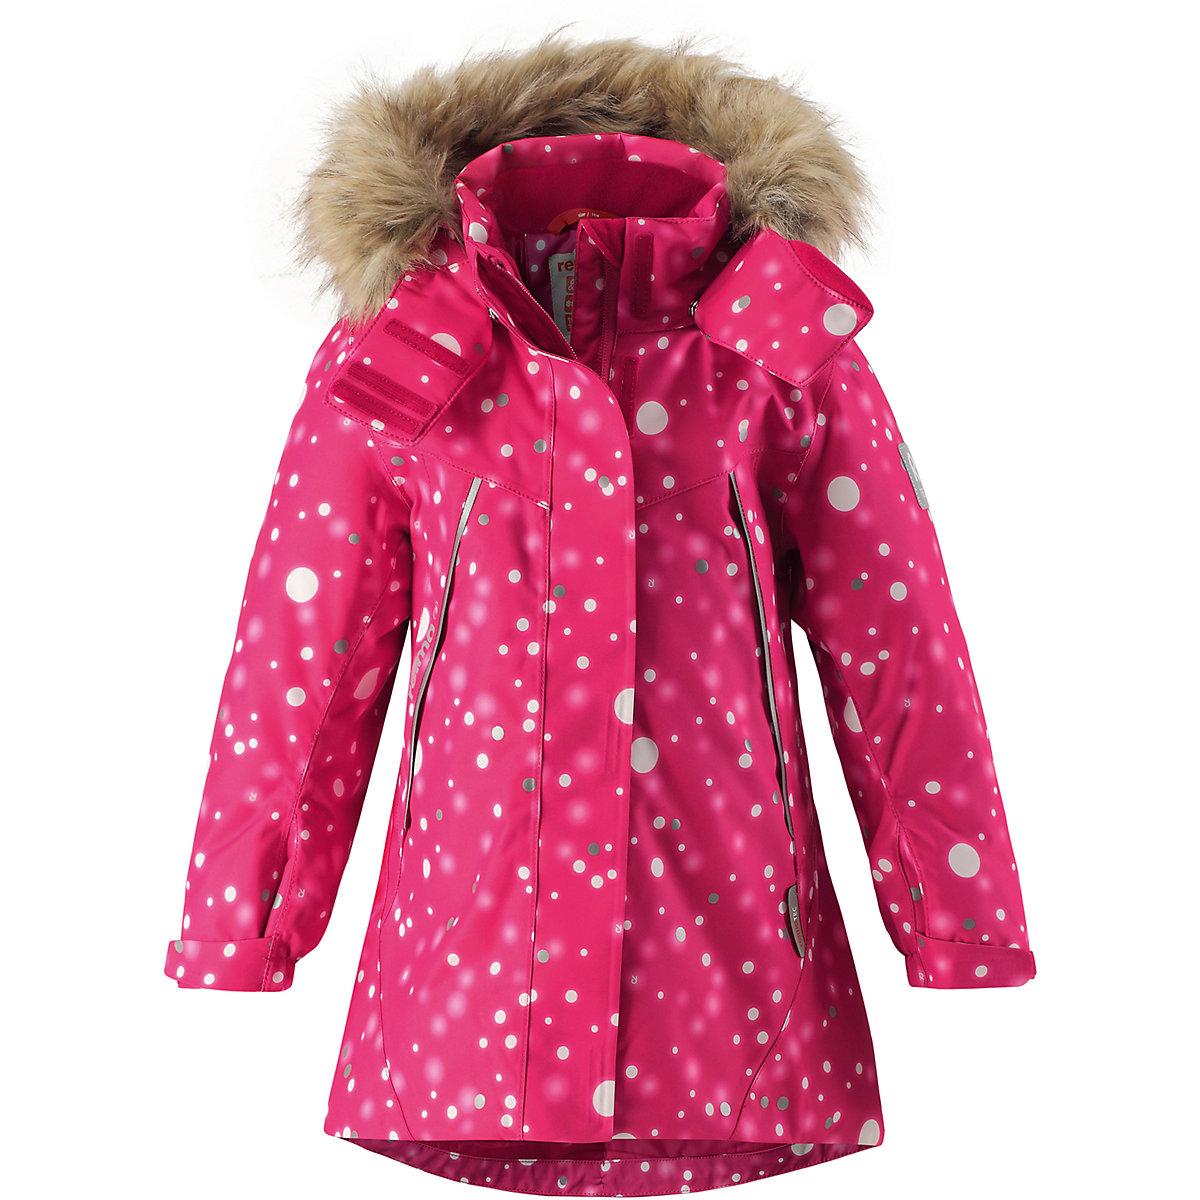 REIMA Jackets & Coats 8665515 for girls baby clothing winter warm boy girl jacket Polyester girl winter coat cotton jackets casual hooded solid warm gold velvet wadded jacket 120 160 black pink 2017 new arrival